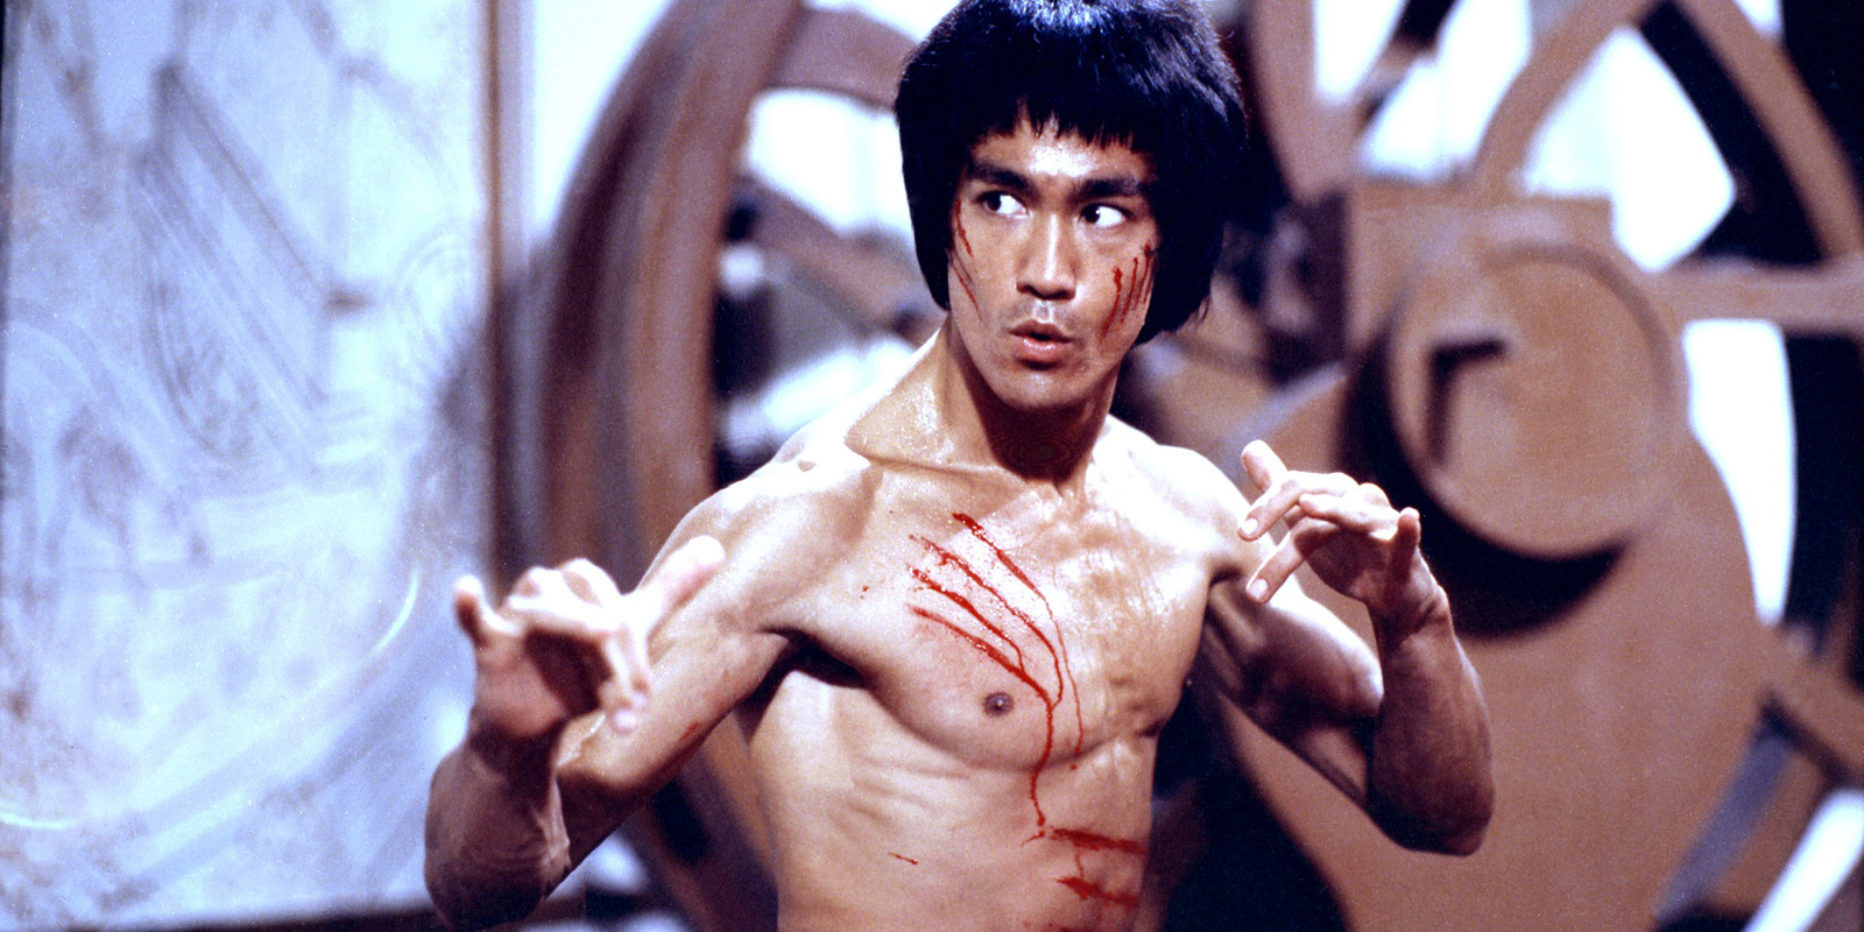 bruce-lee-enter-the-dragon-1864x932.jpg